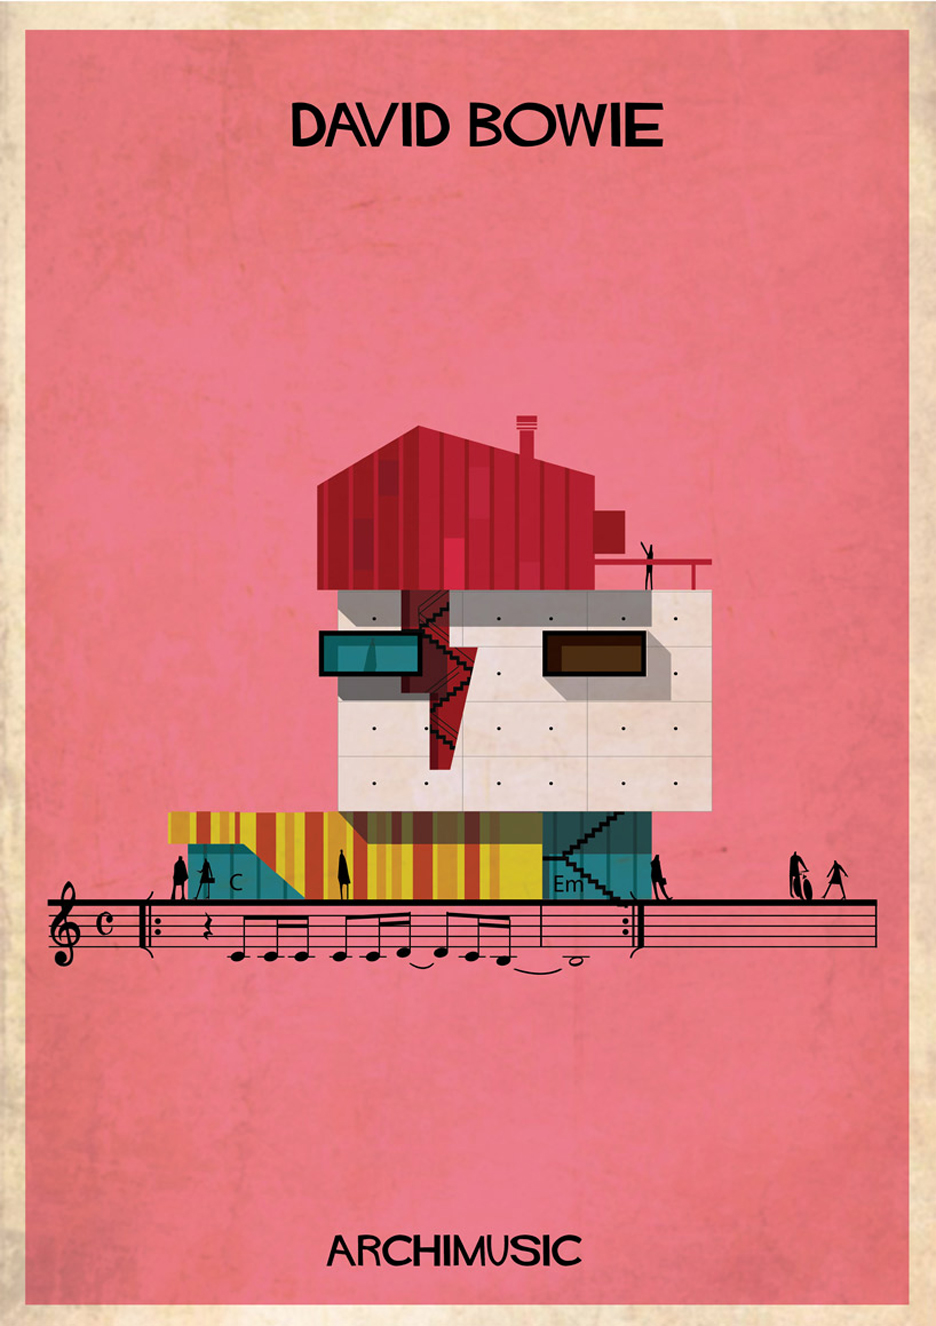 David Bowie Archimusic illustration by Federico Babina